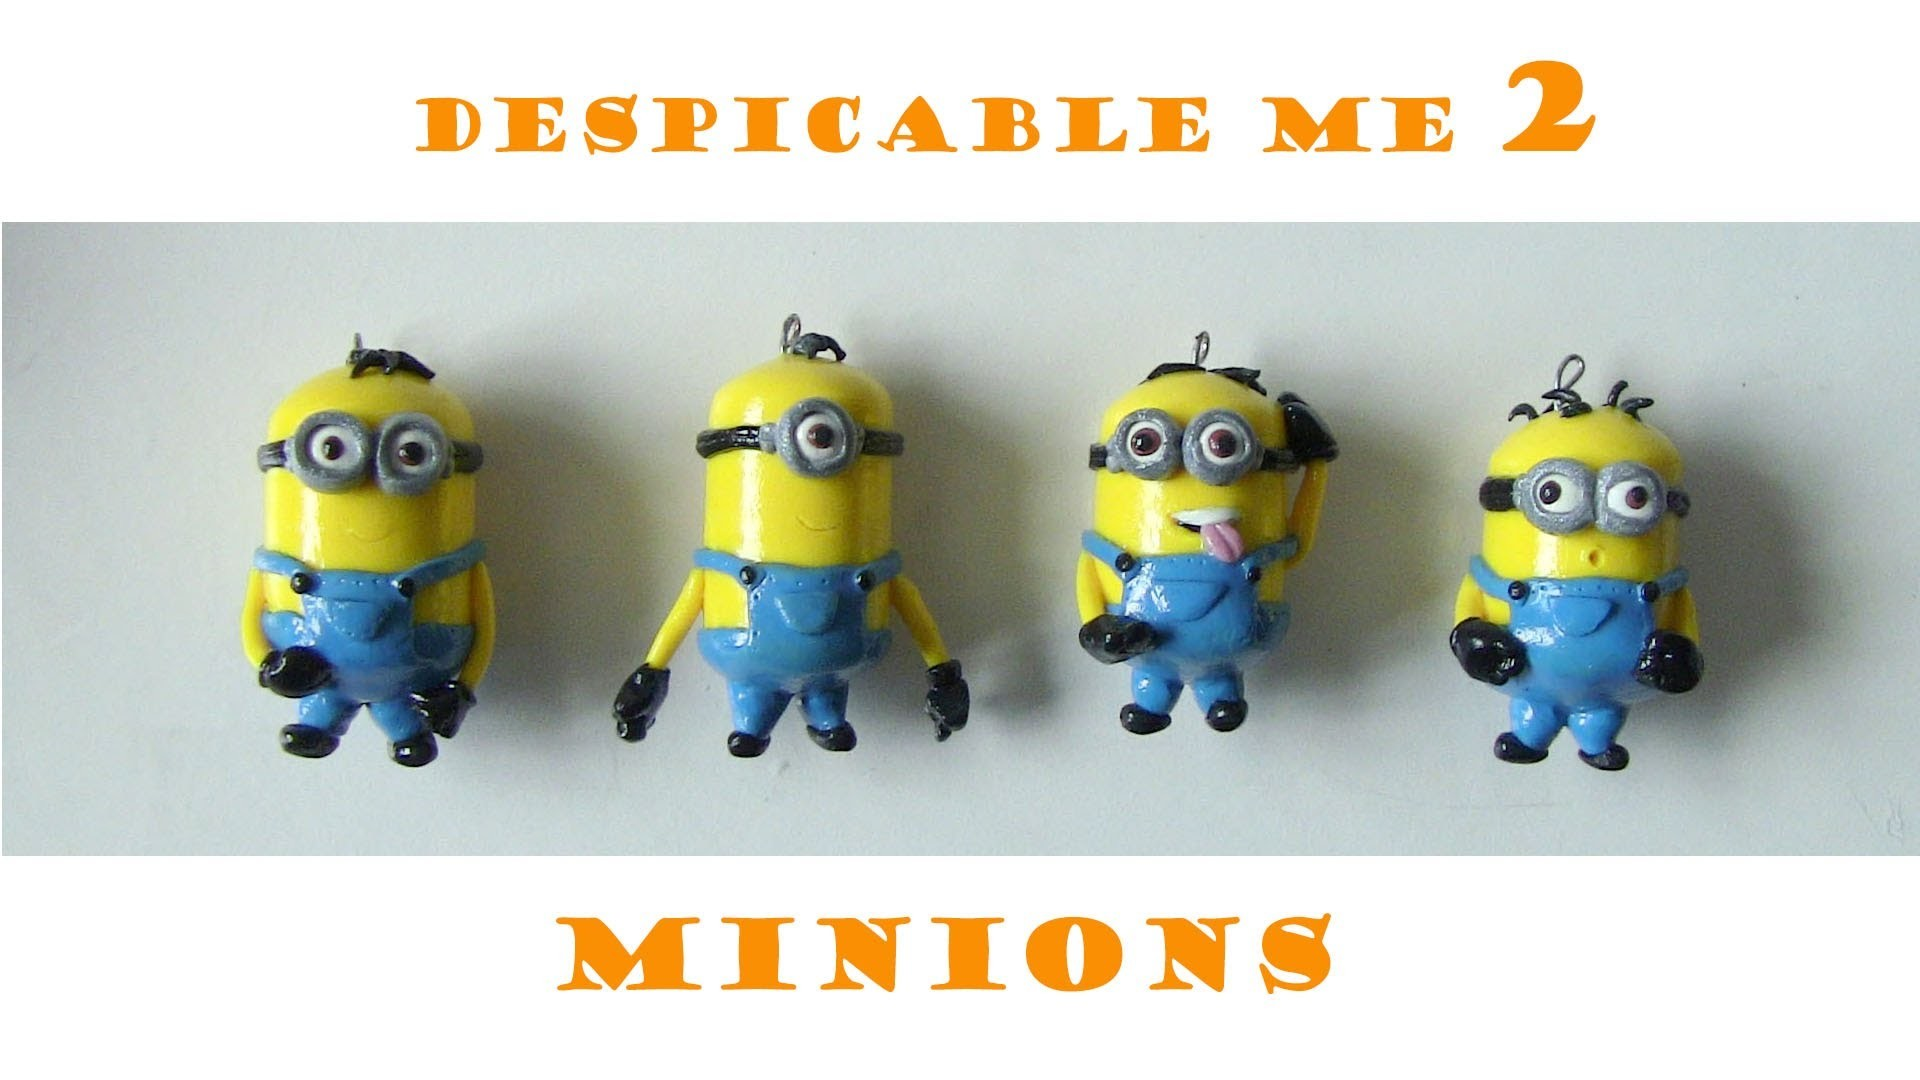 Minions Polymer Clay Tutorial from Despicable Me 2